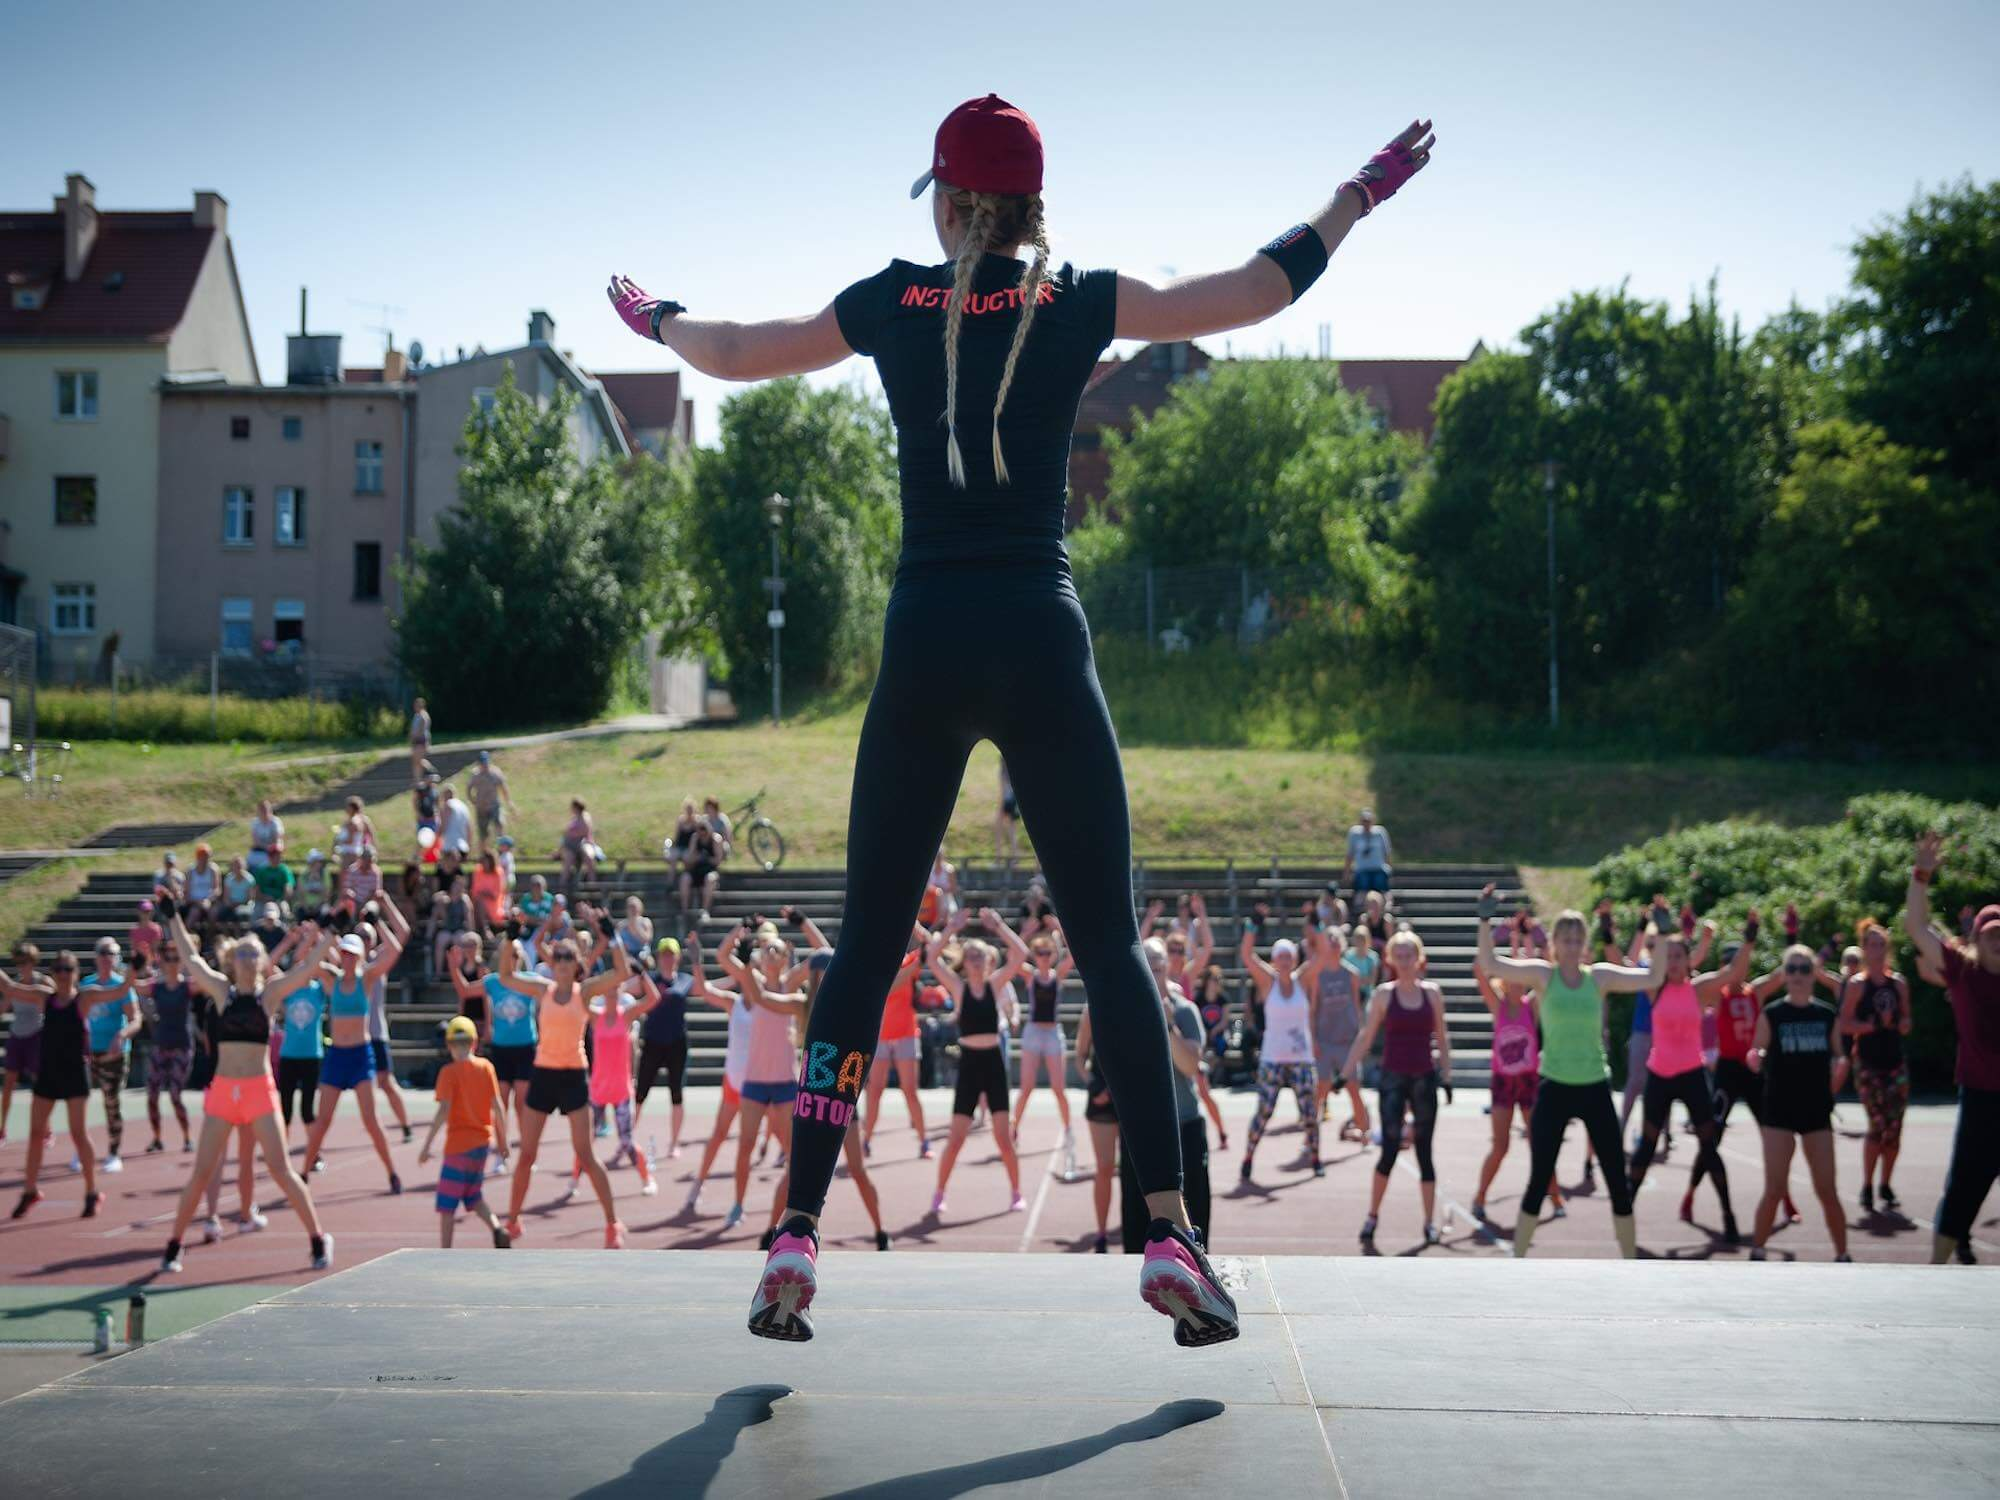 A dance instructor leads a large outdoor class